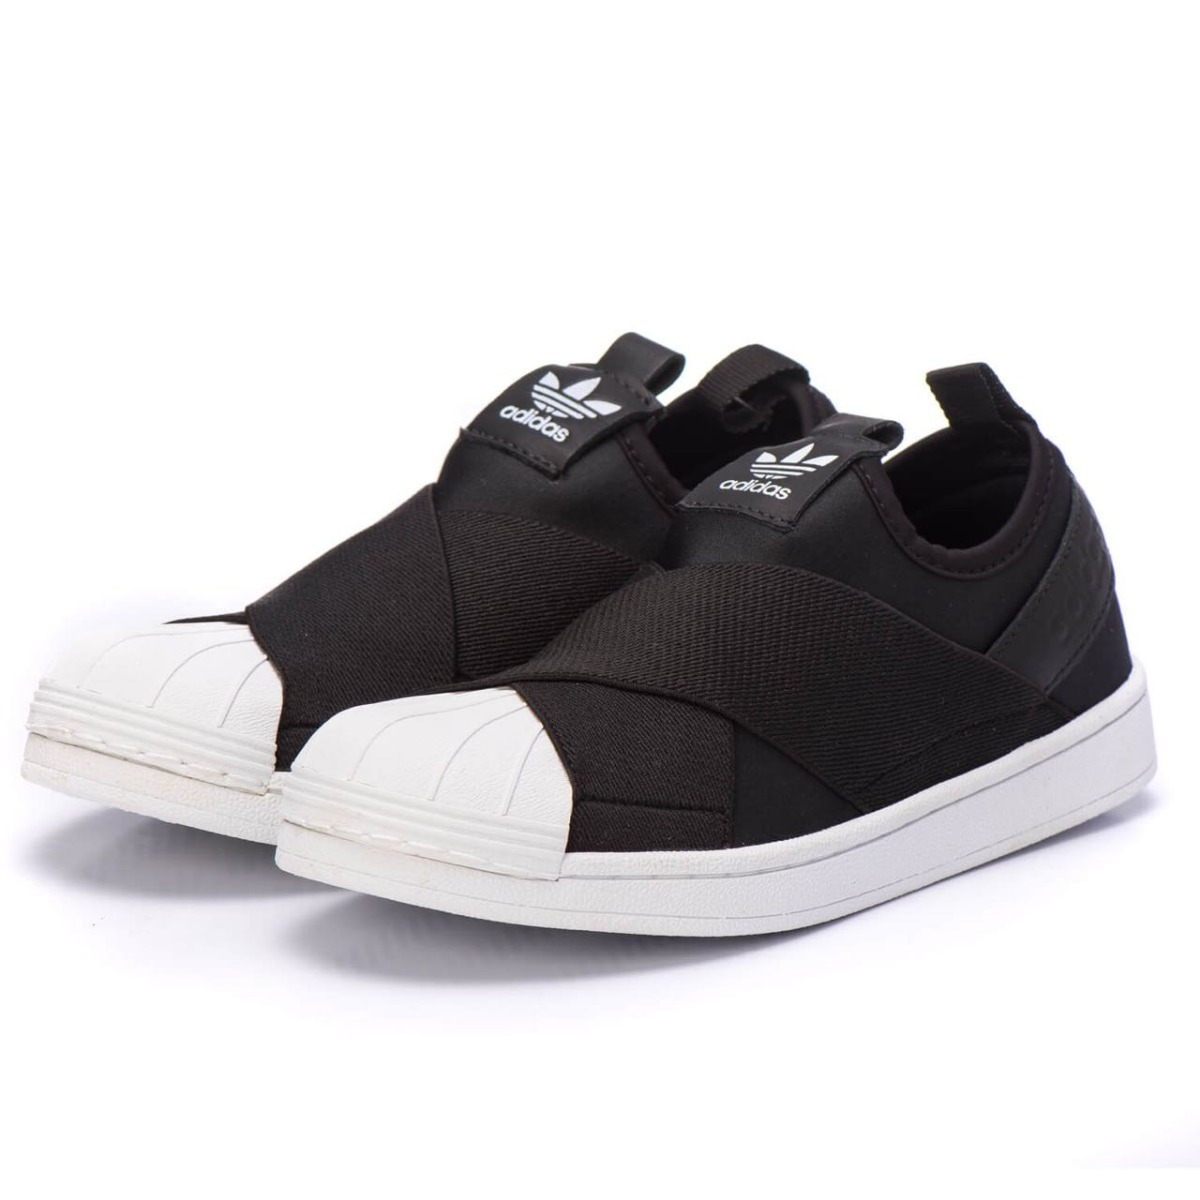 6bb9e2adced ... denmark adidas originals superstar slip on w preto. carregando zoom.  19f86 68dd7